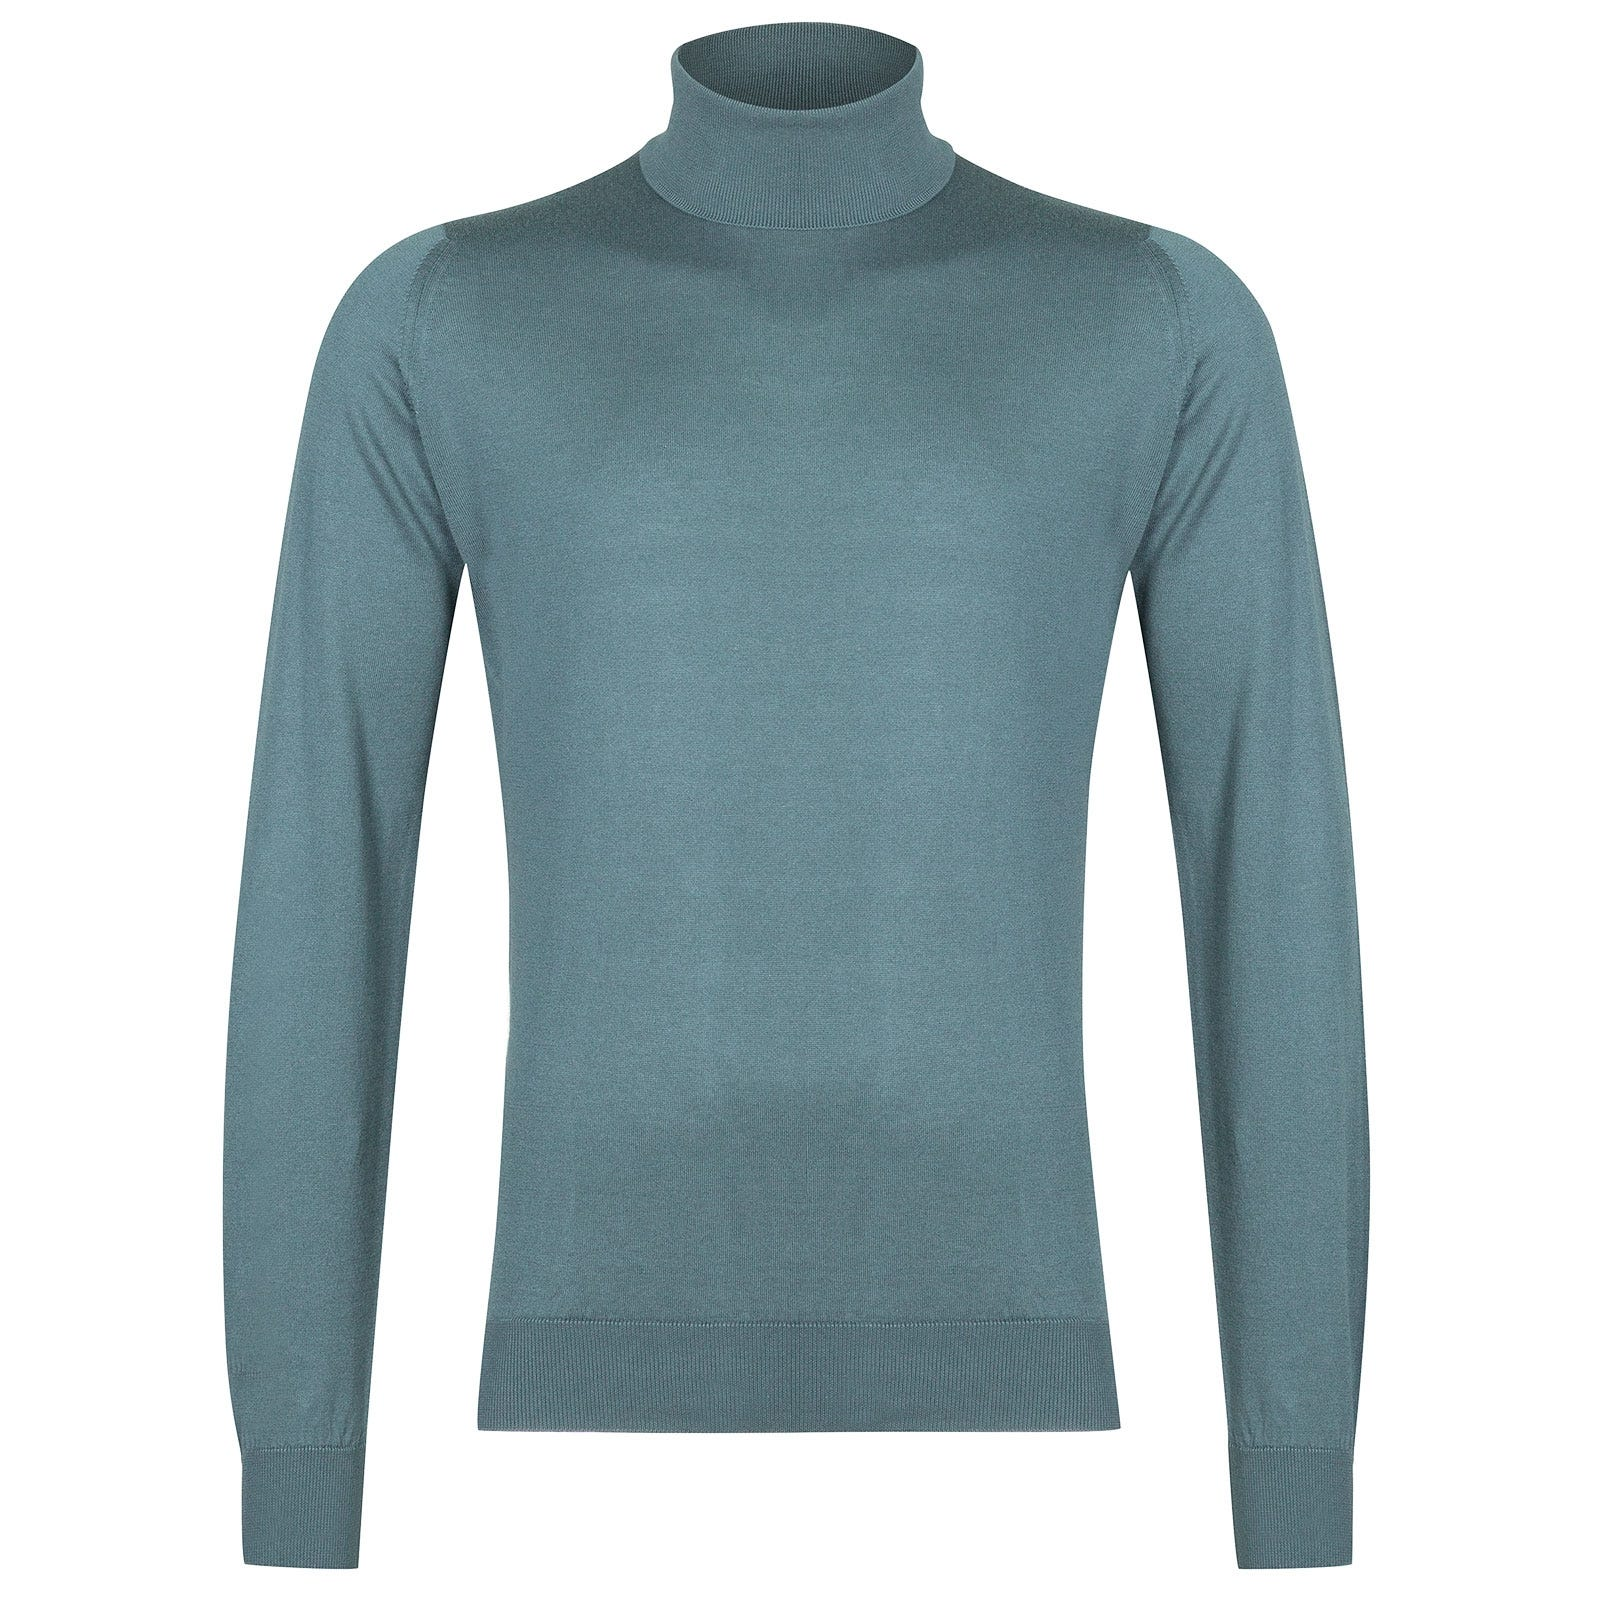 John Smedley Hawley Sea Island Cotton Pullover in Summit Blue-L